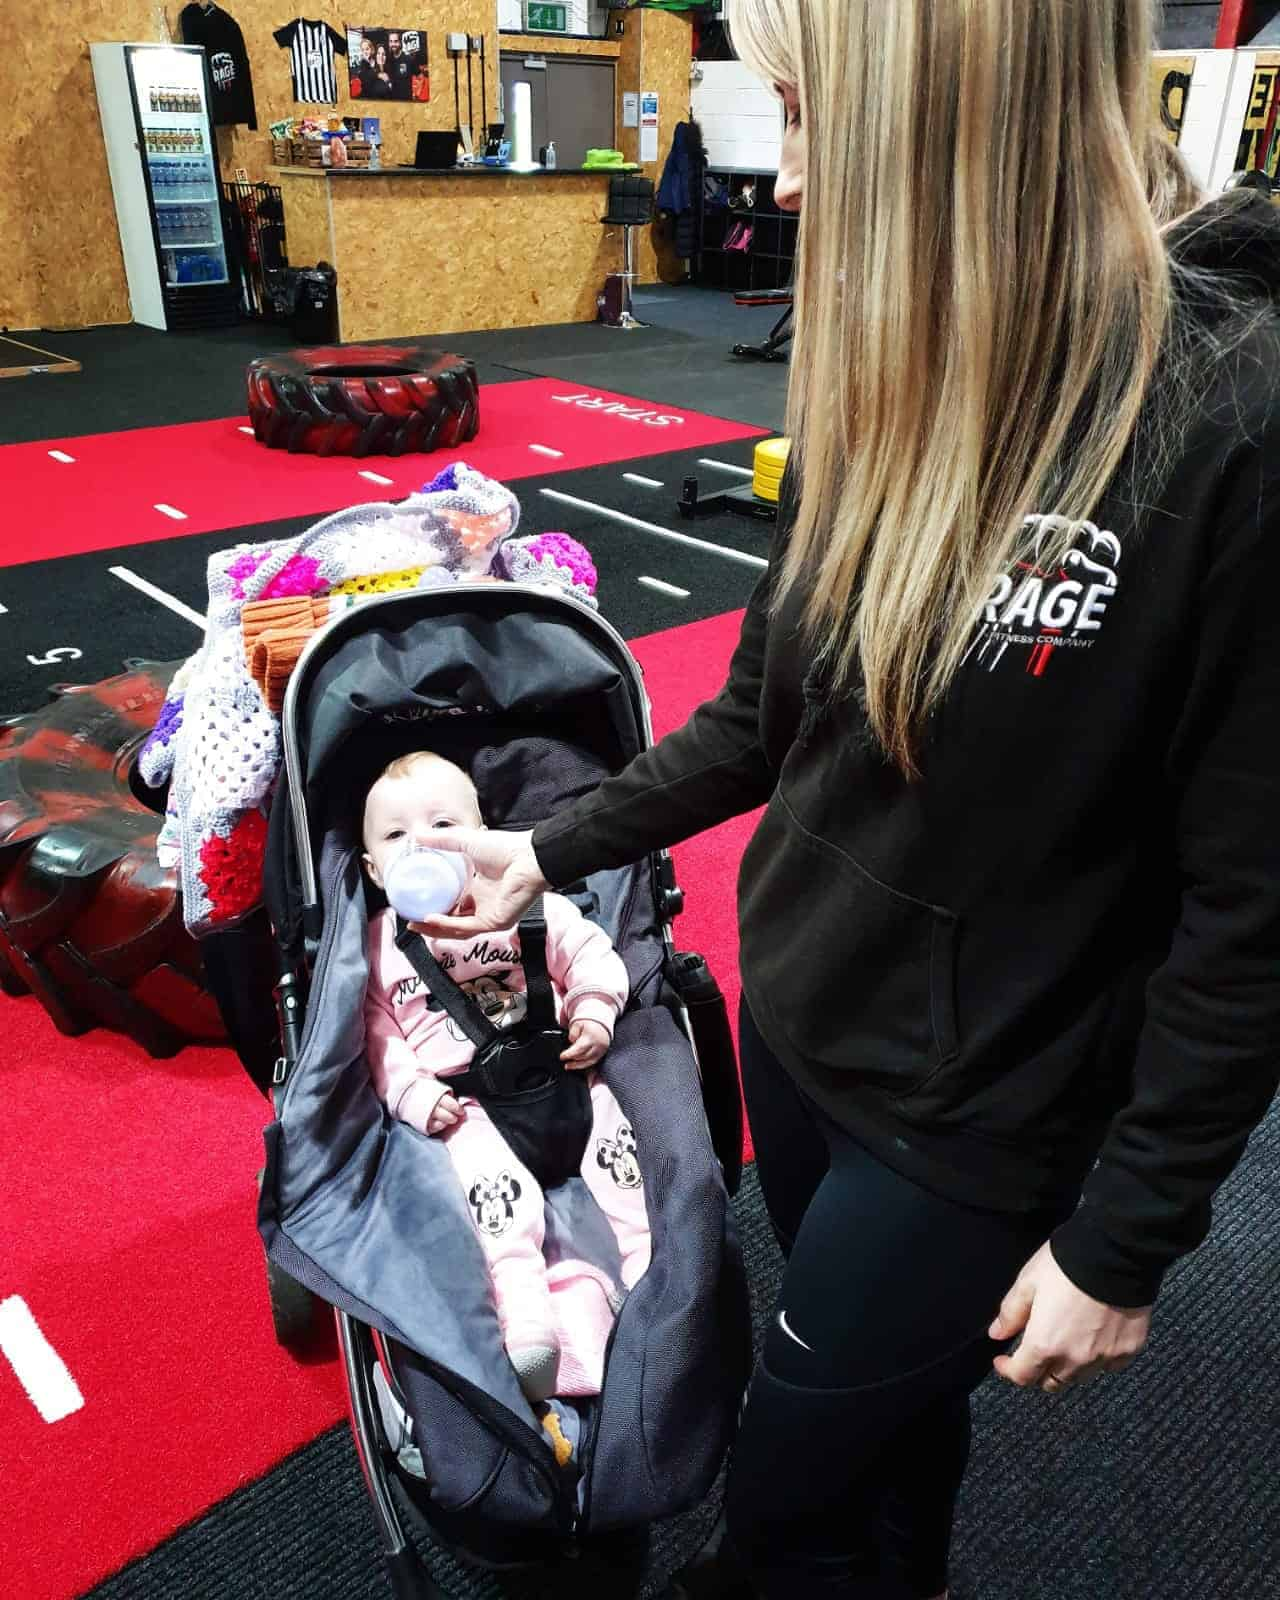 Parenthood, Isolation and Rage Fitness Company…